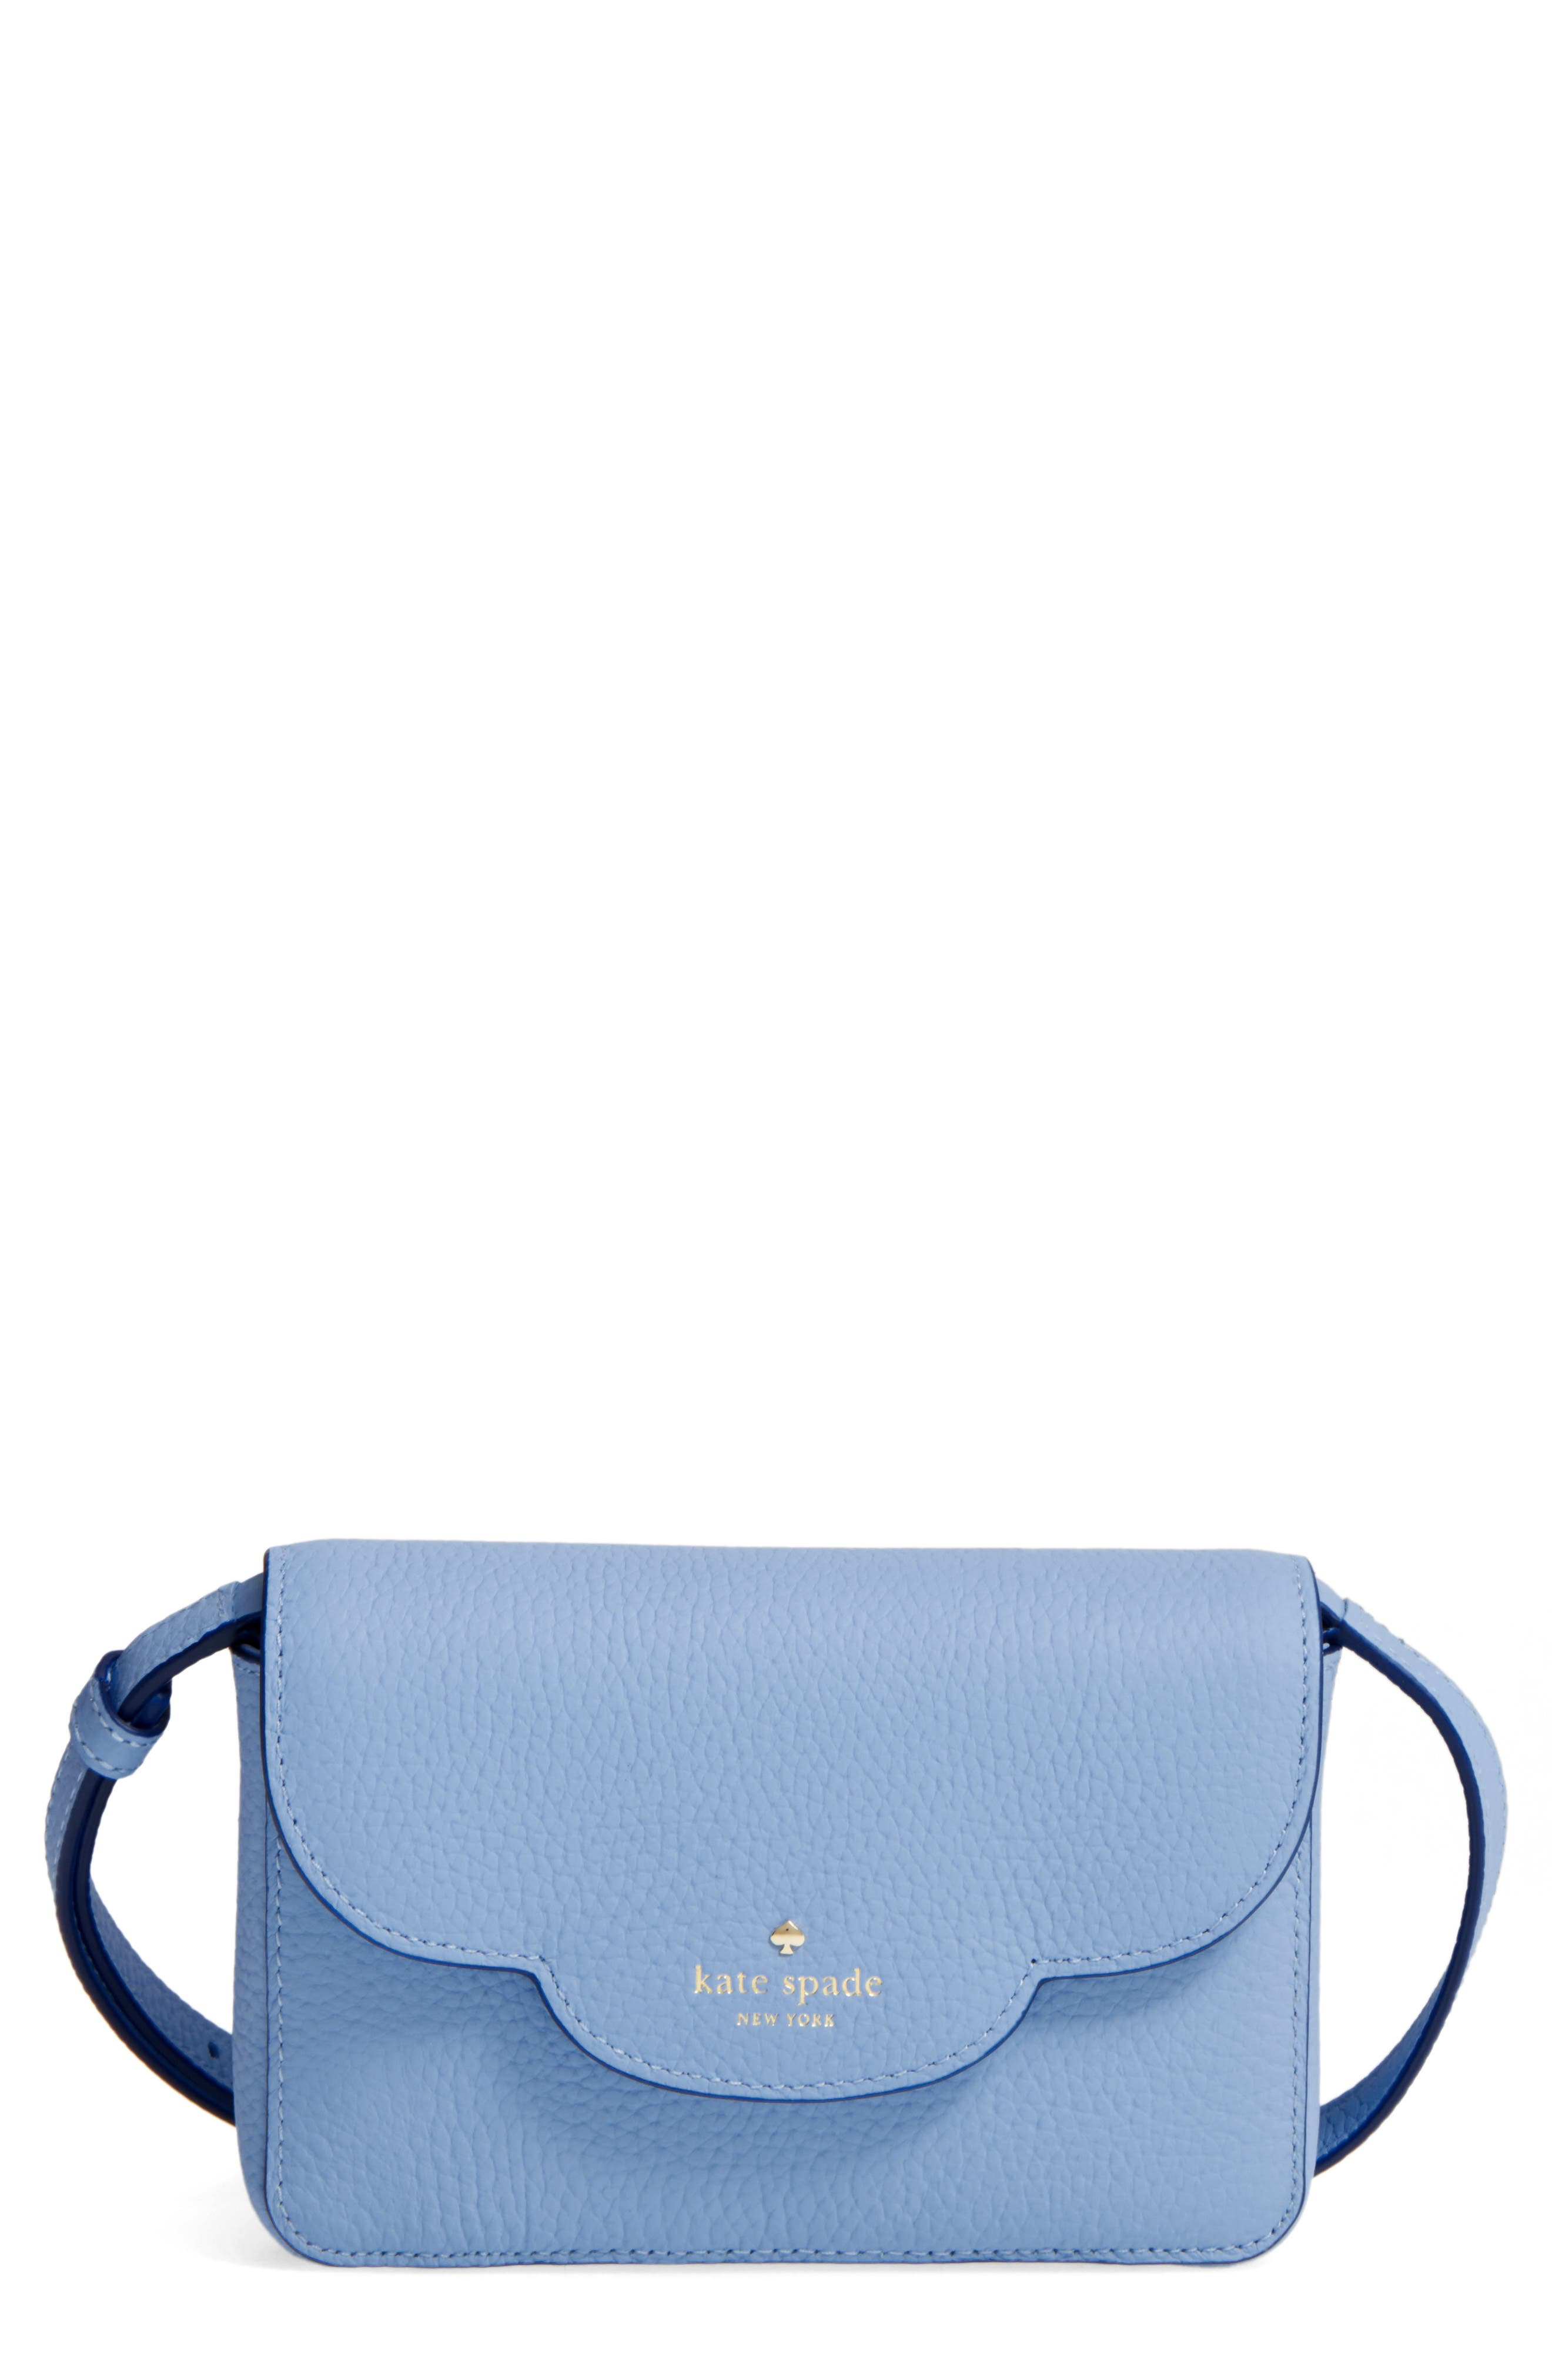 Alternate Image 1 Selected - kate spade new york leewood place joley leather crossbody bag